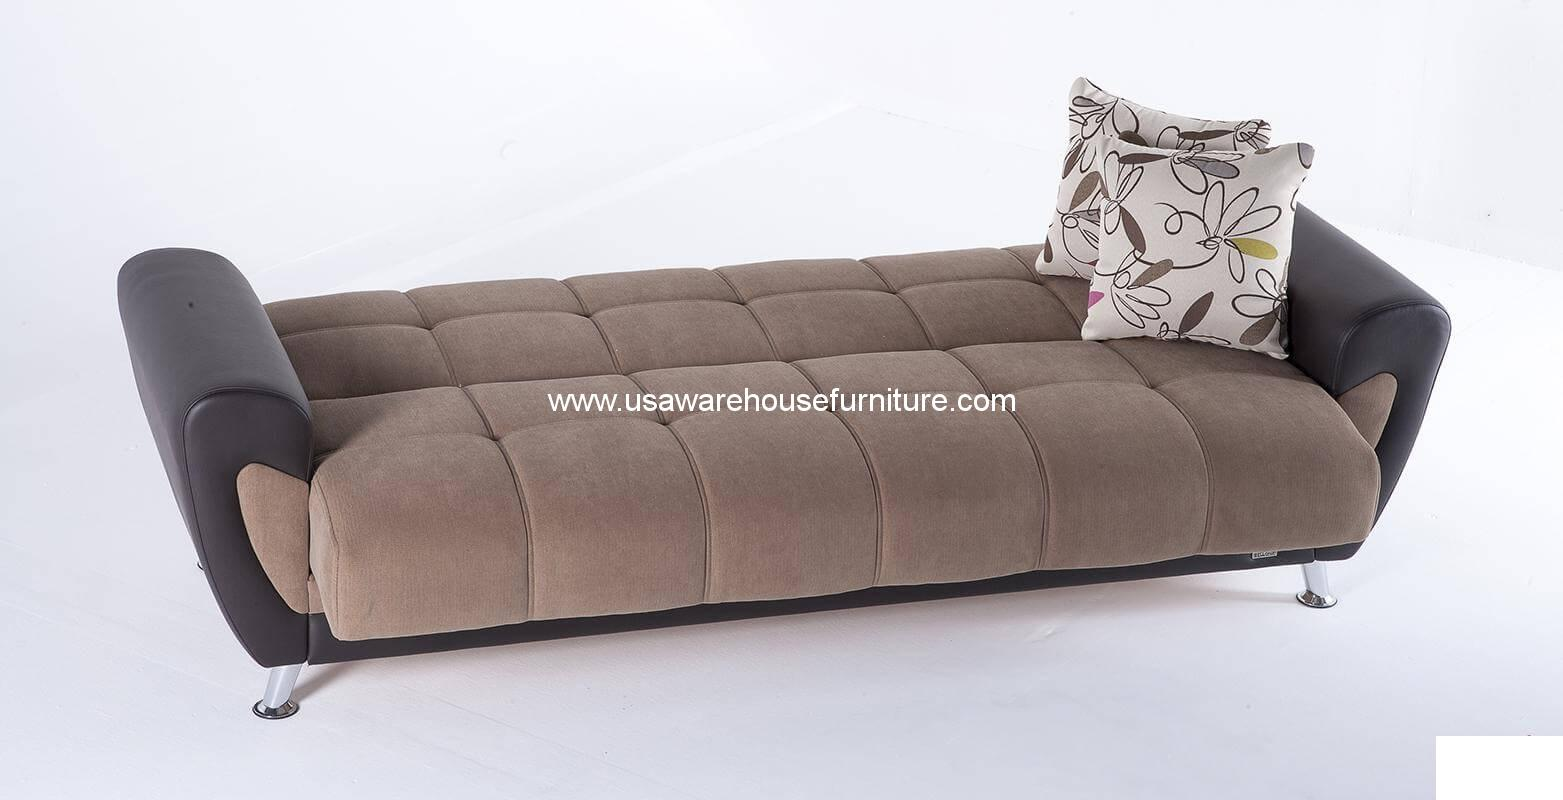 sleeper sofa bed corner that turns into a demka duru optimum brown usa warehouse